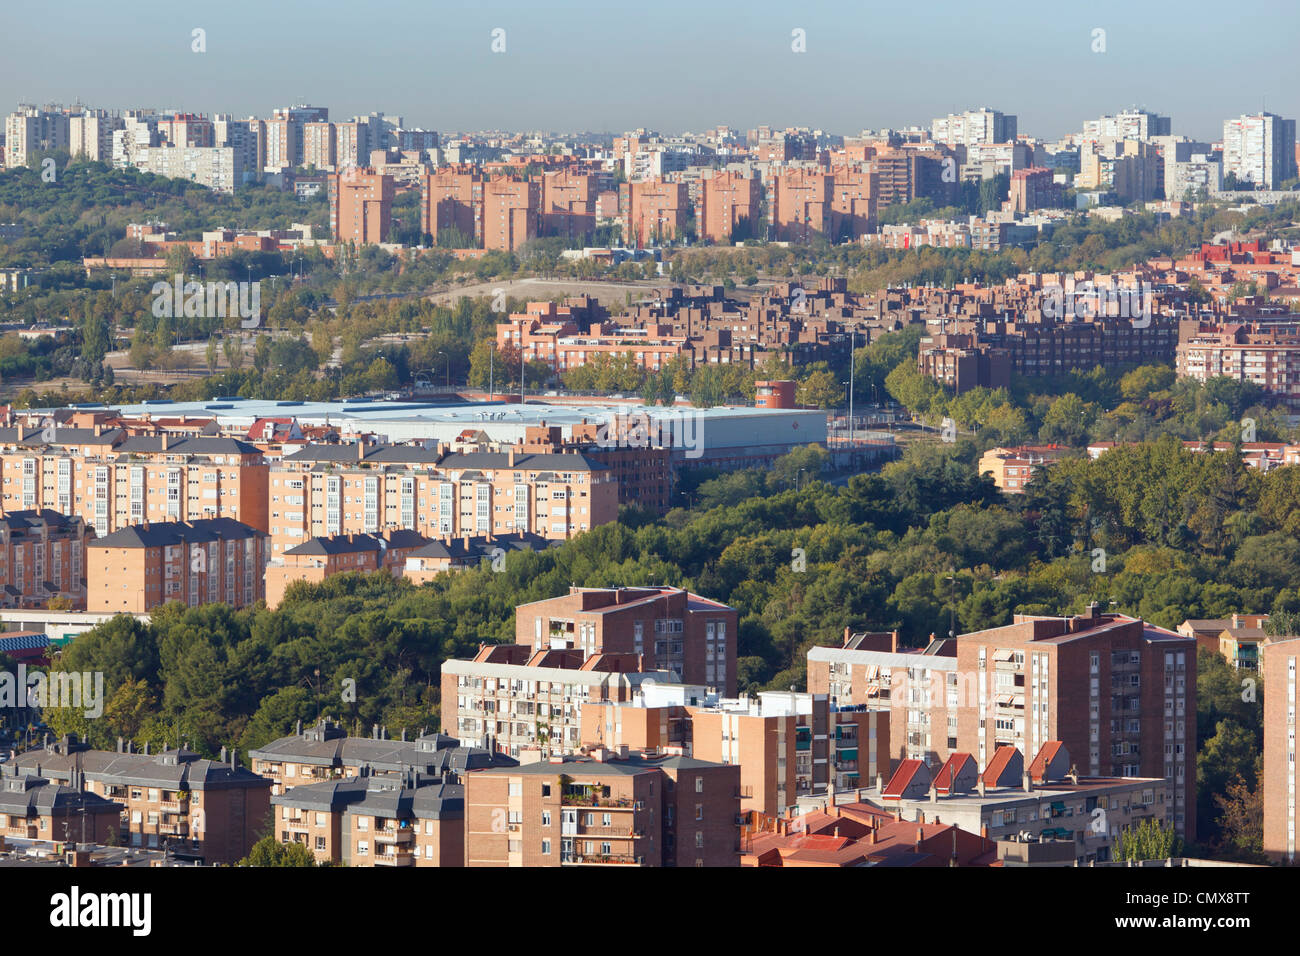 Madrid, Spain. Apartment blocks in western area of the city. - Stock Image